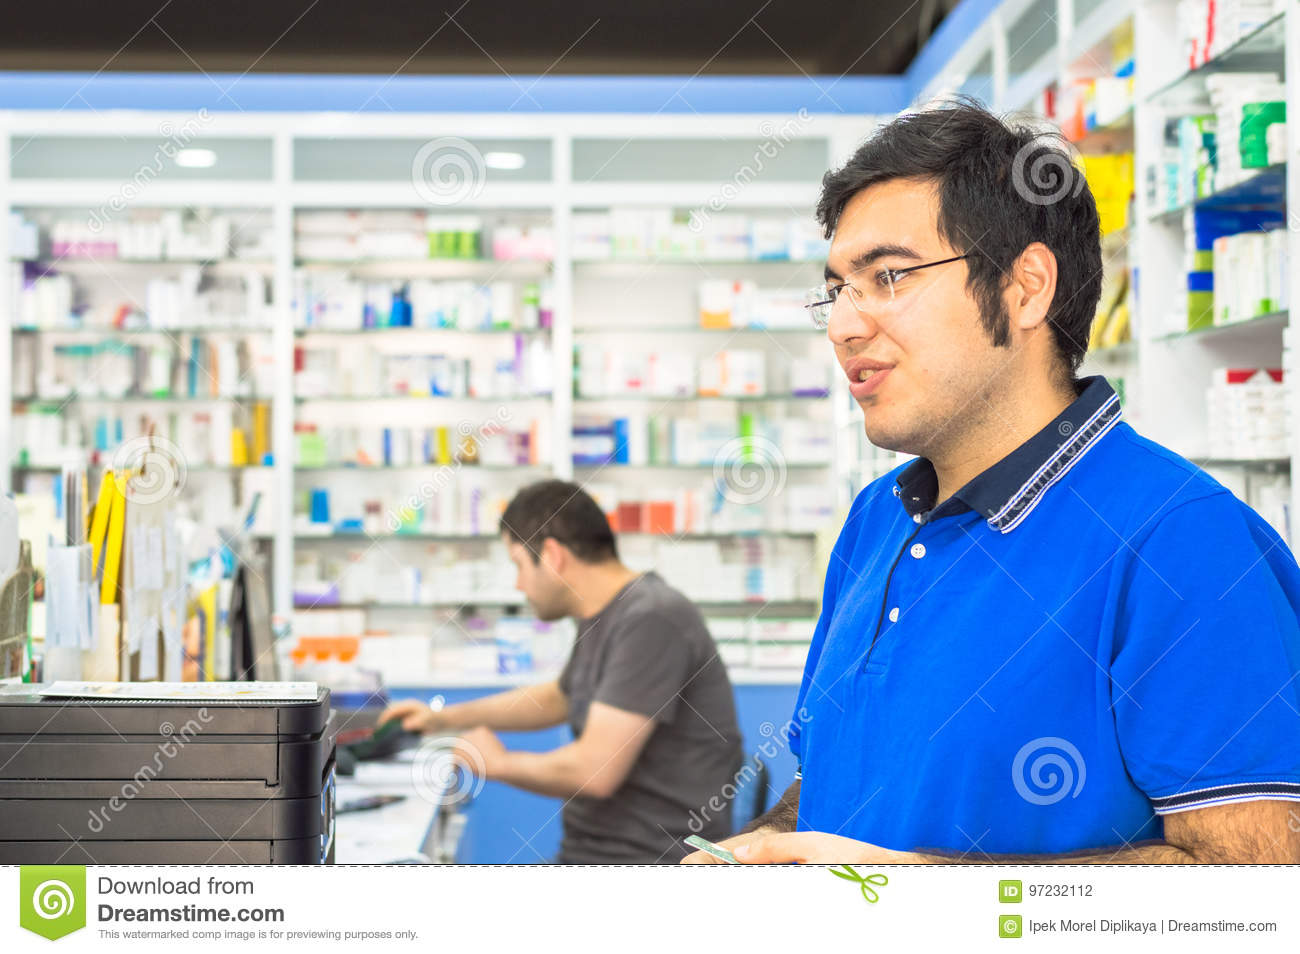 Eskisehir, Turkey - June 14, 2017: Portrait of a young male pharmacist standing at counter in pharmacy.